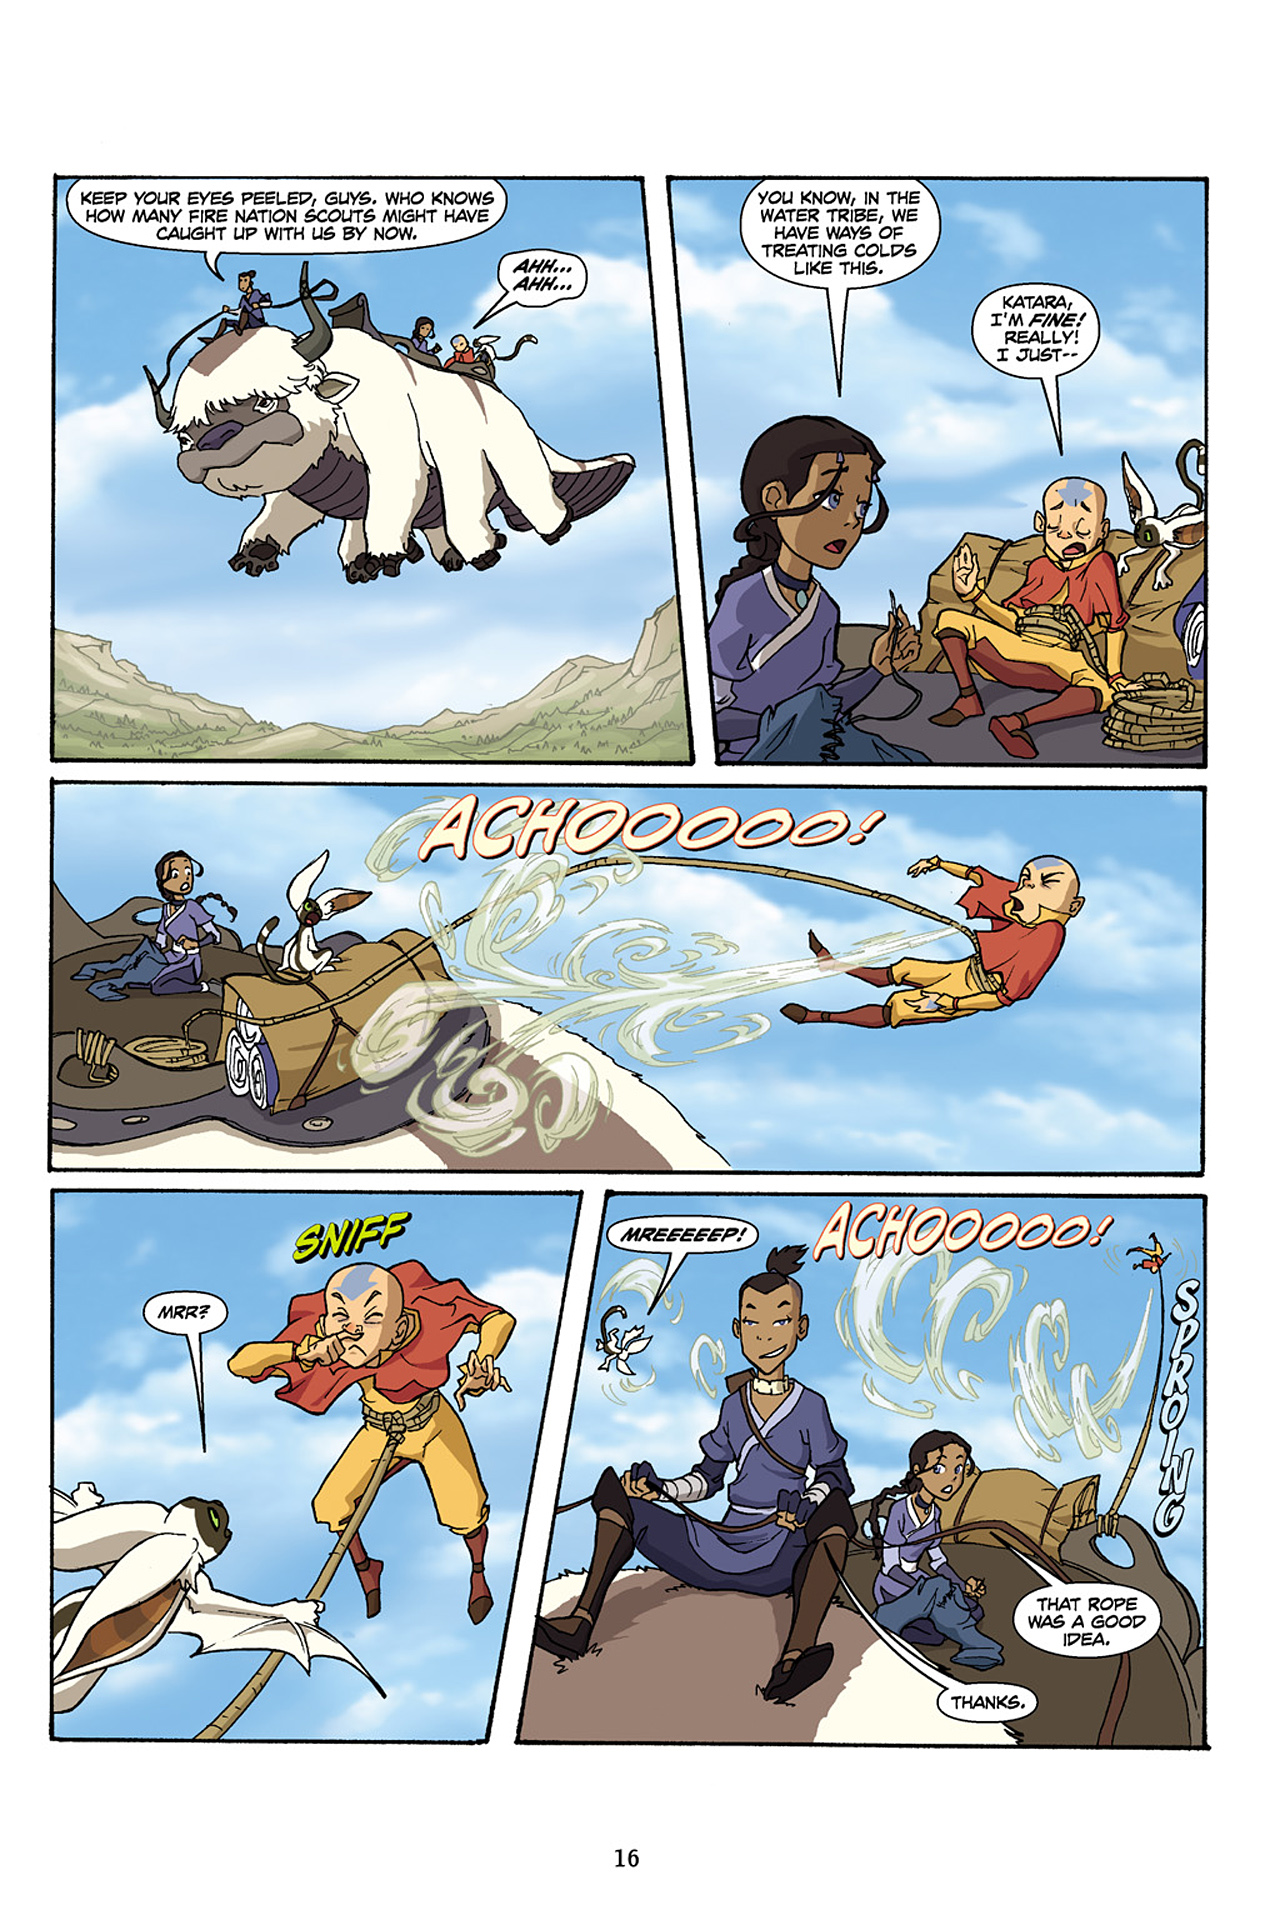 Nickelodeon Avatar: The Last Airbender - The Lost Adventures chap full pic 17